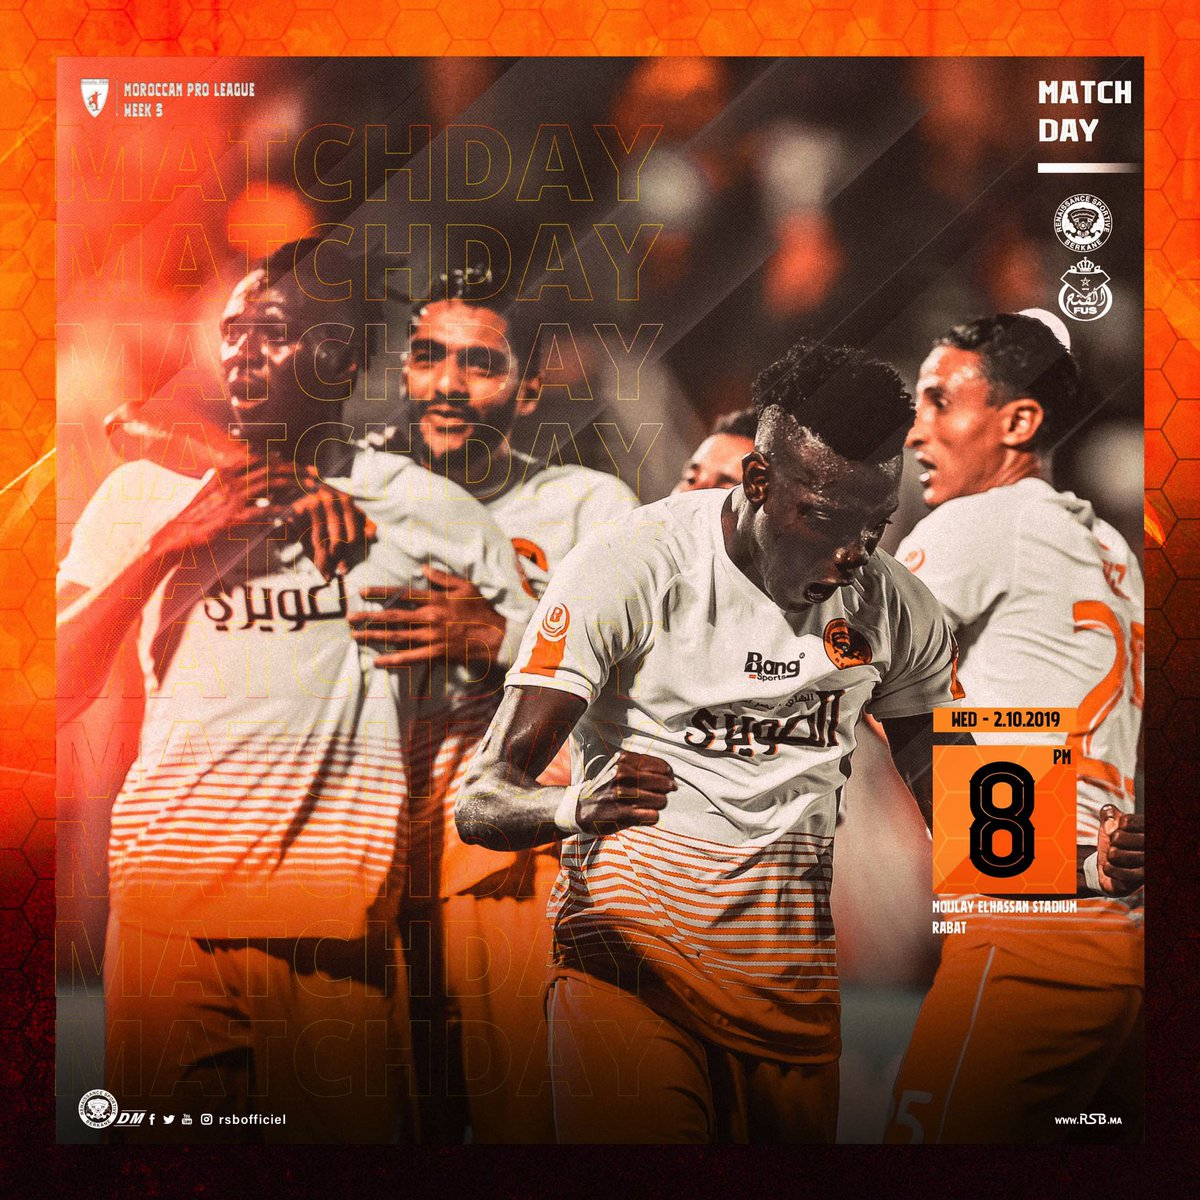 Its the Matchday #3 in Moroccan pro league! ⚡️ 🆚 FUS 📆 2.10.2019 ⏰ 8PM GMT+1 🏟 Moulay Elhassan Stadium - RABAT 📲 #FUSRSB